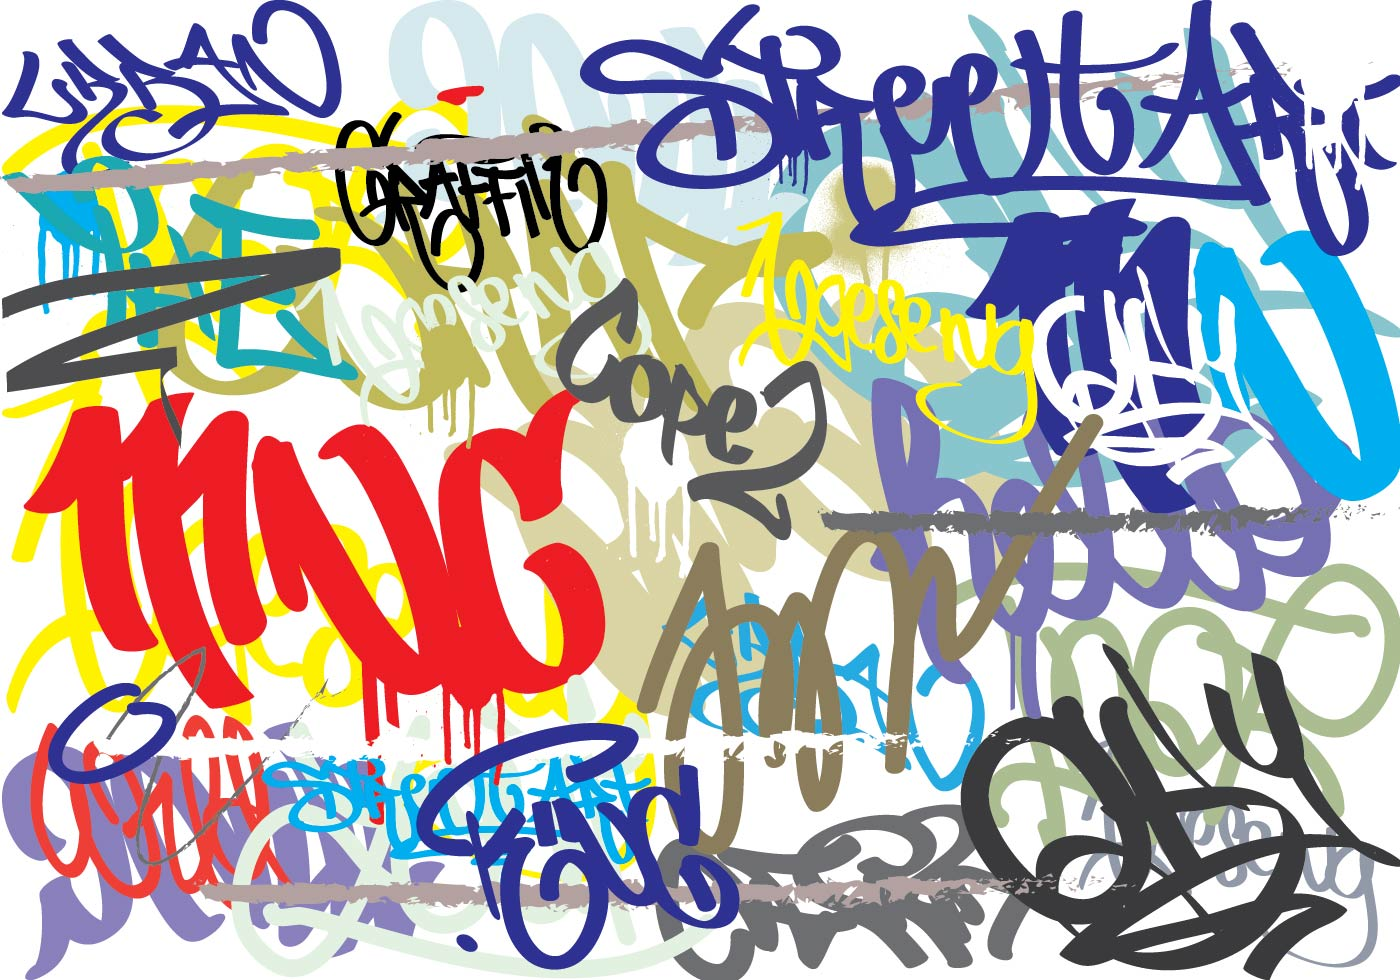 Graffiti Abstract Background Download Free Vector Art Stock Graphics Images